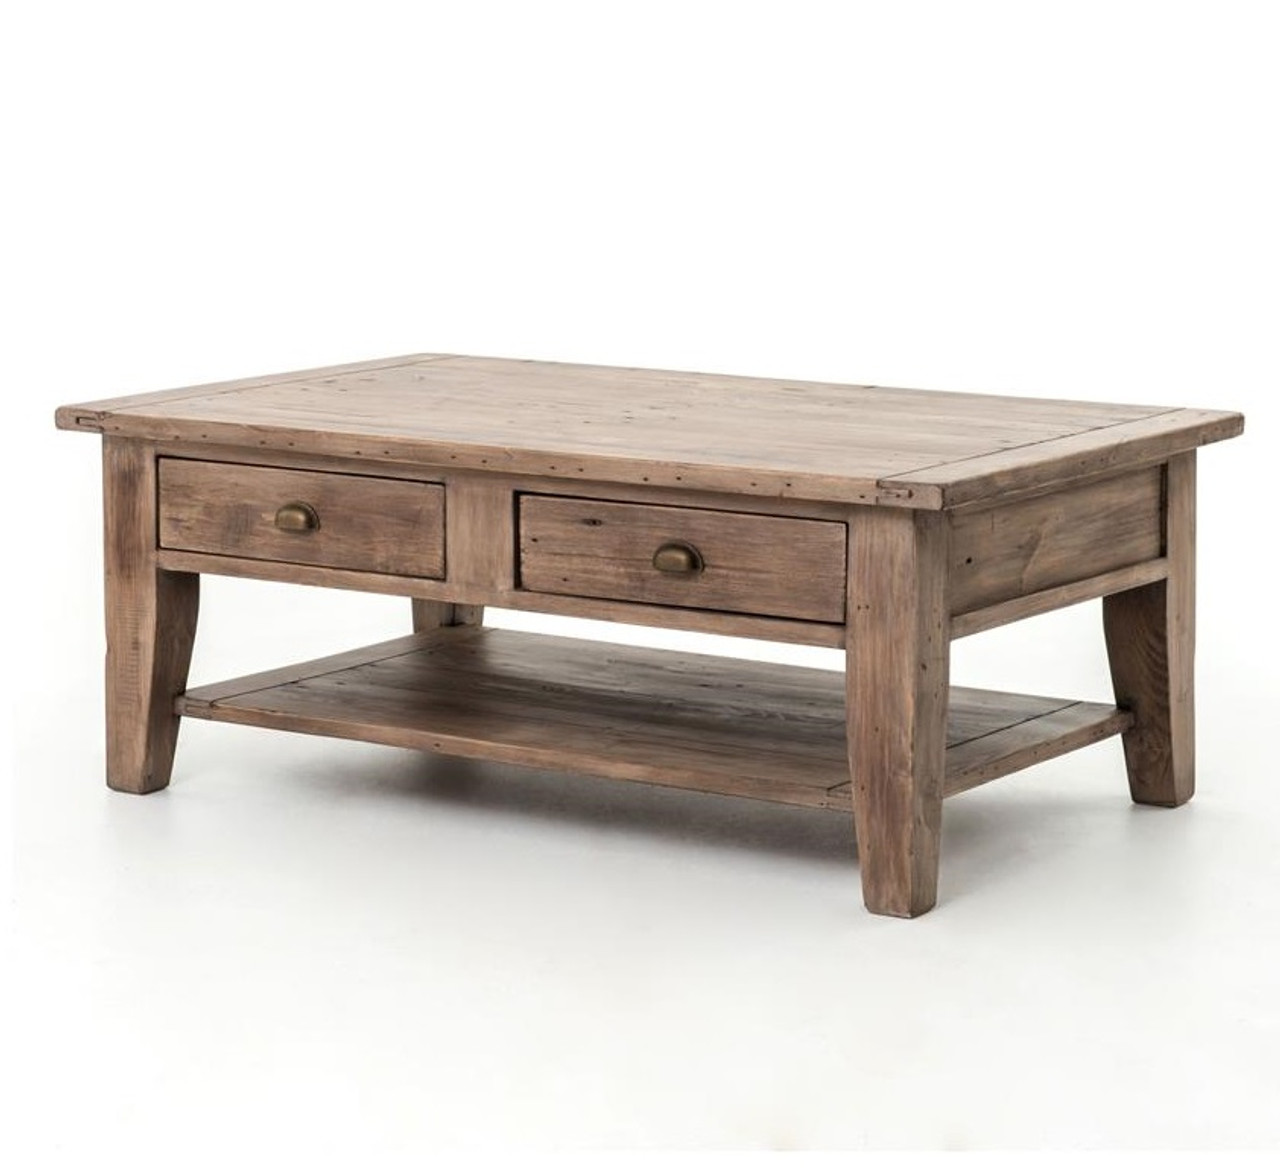 solid wood coffee table Coastal Solid Wood Rustic Coffee Table with Drawers | Zin Home solid wood coffee table